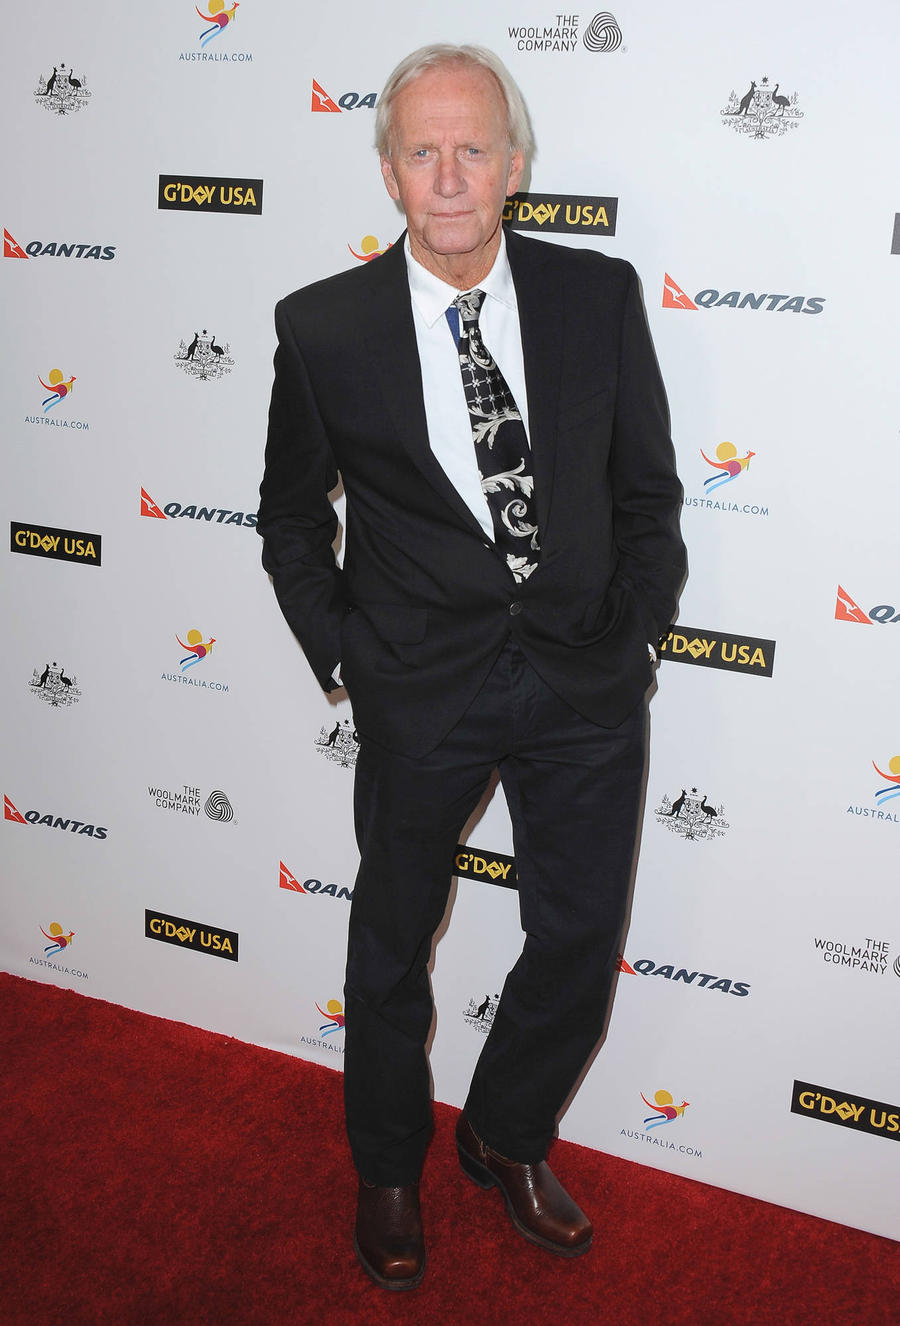 Paul Hogan To Receive Top Australian Film Honour